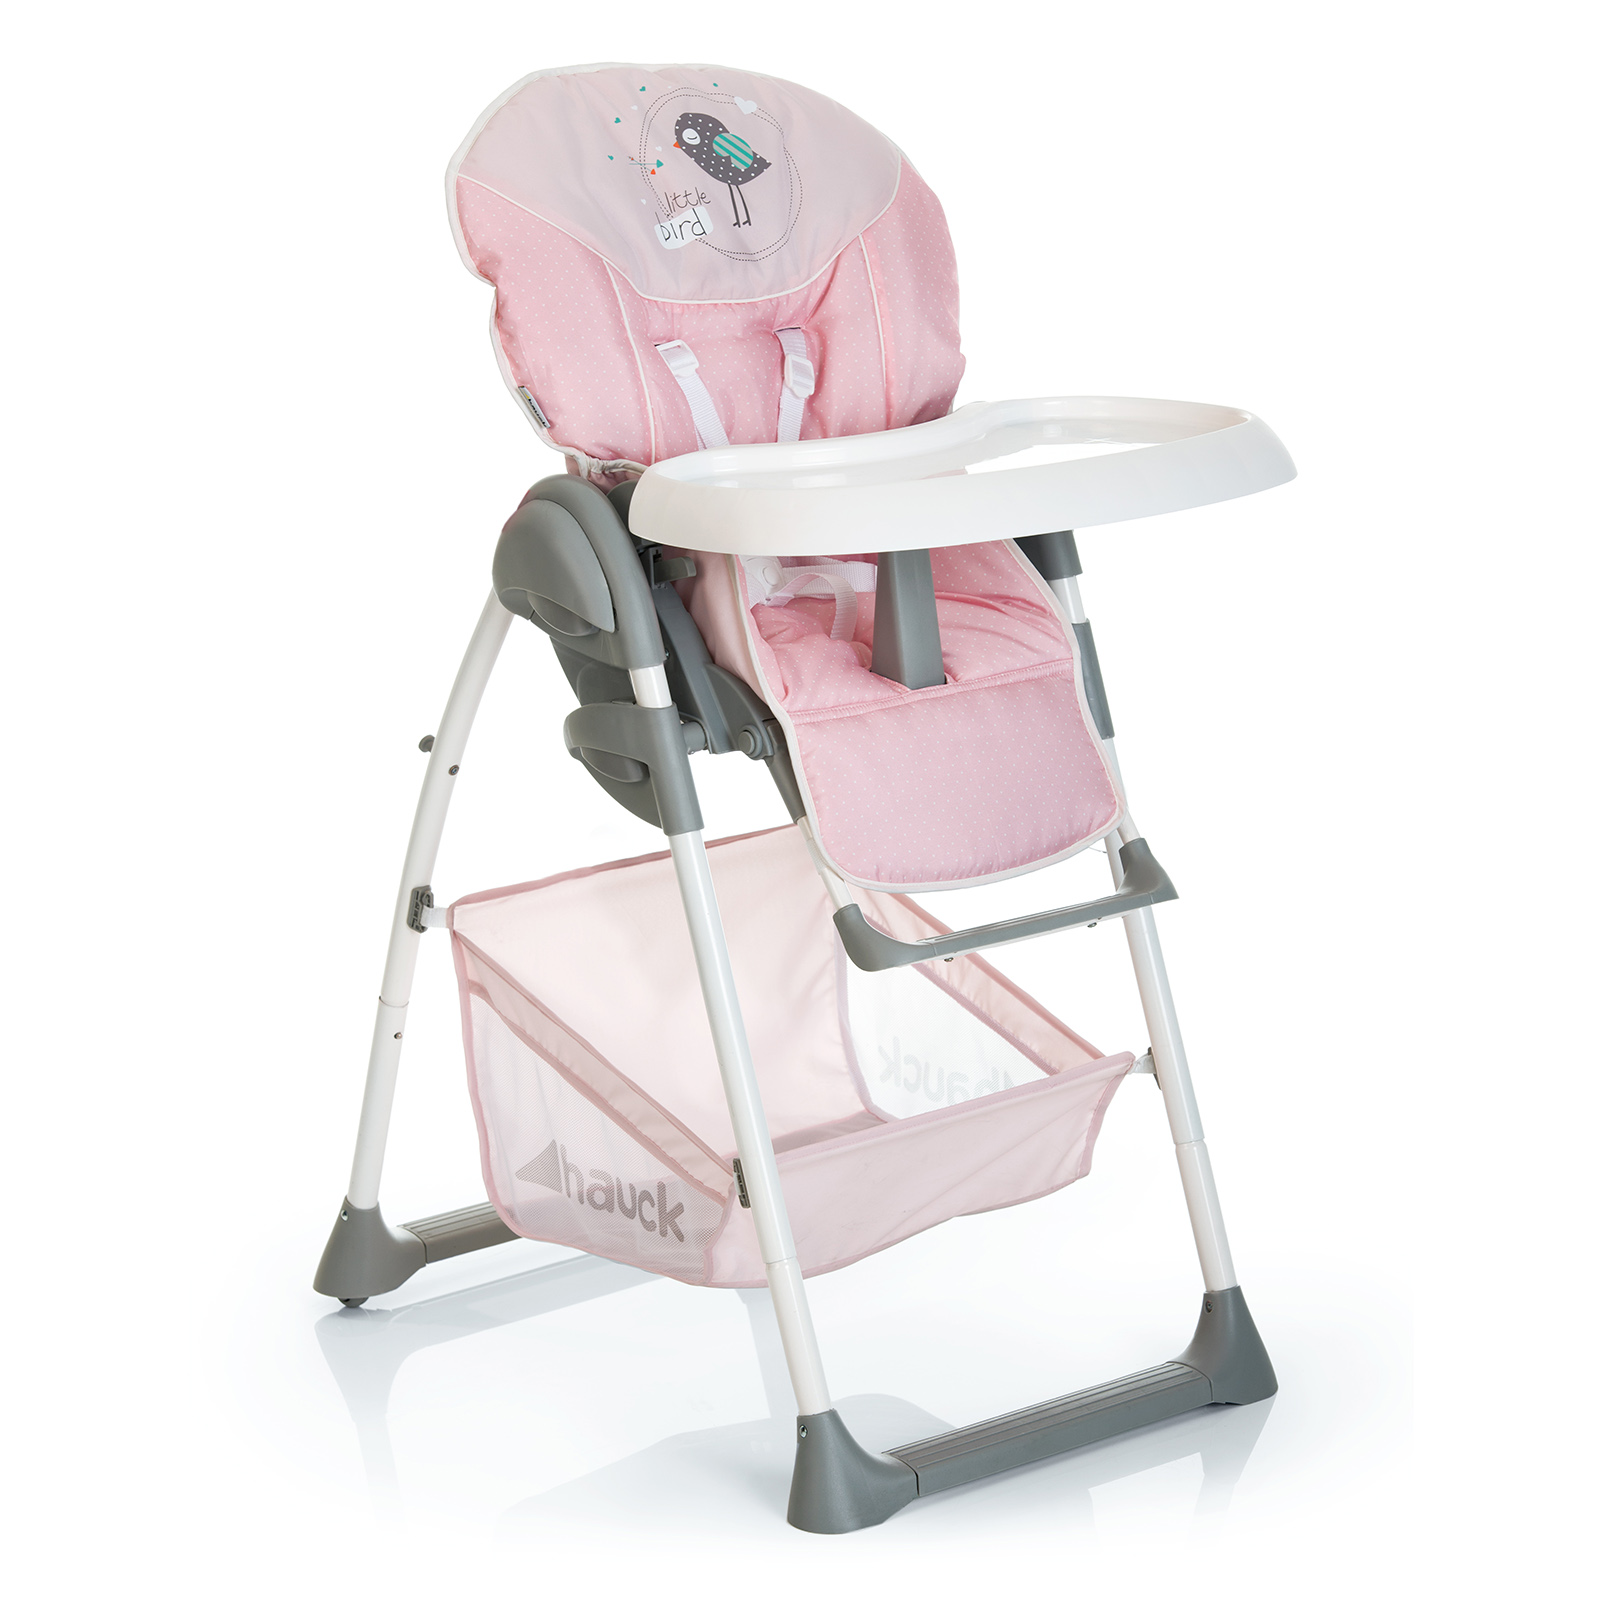 argos baby bouncer chair tables and chairs for party new hauck sit n relax 2 in 1 highchair high